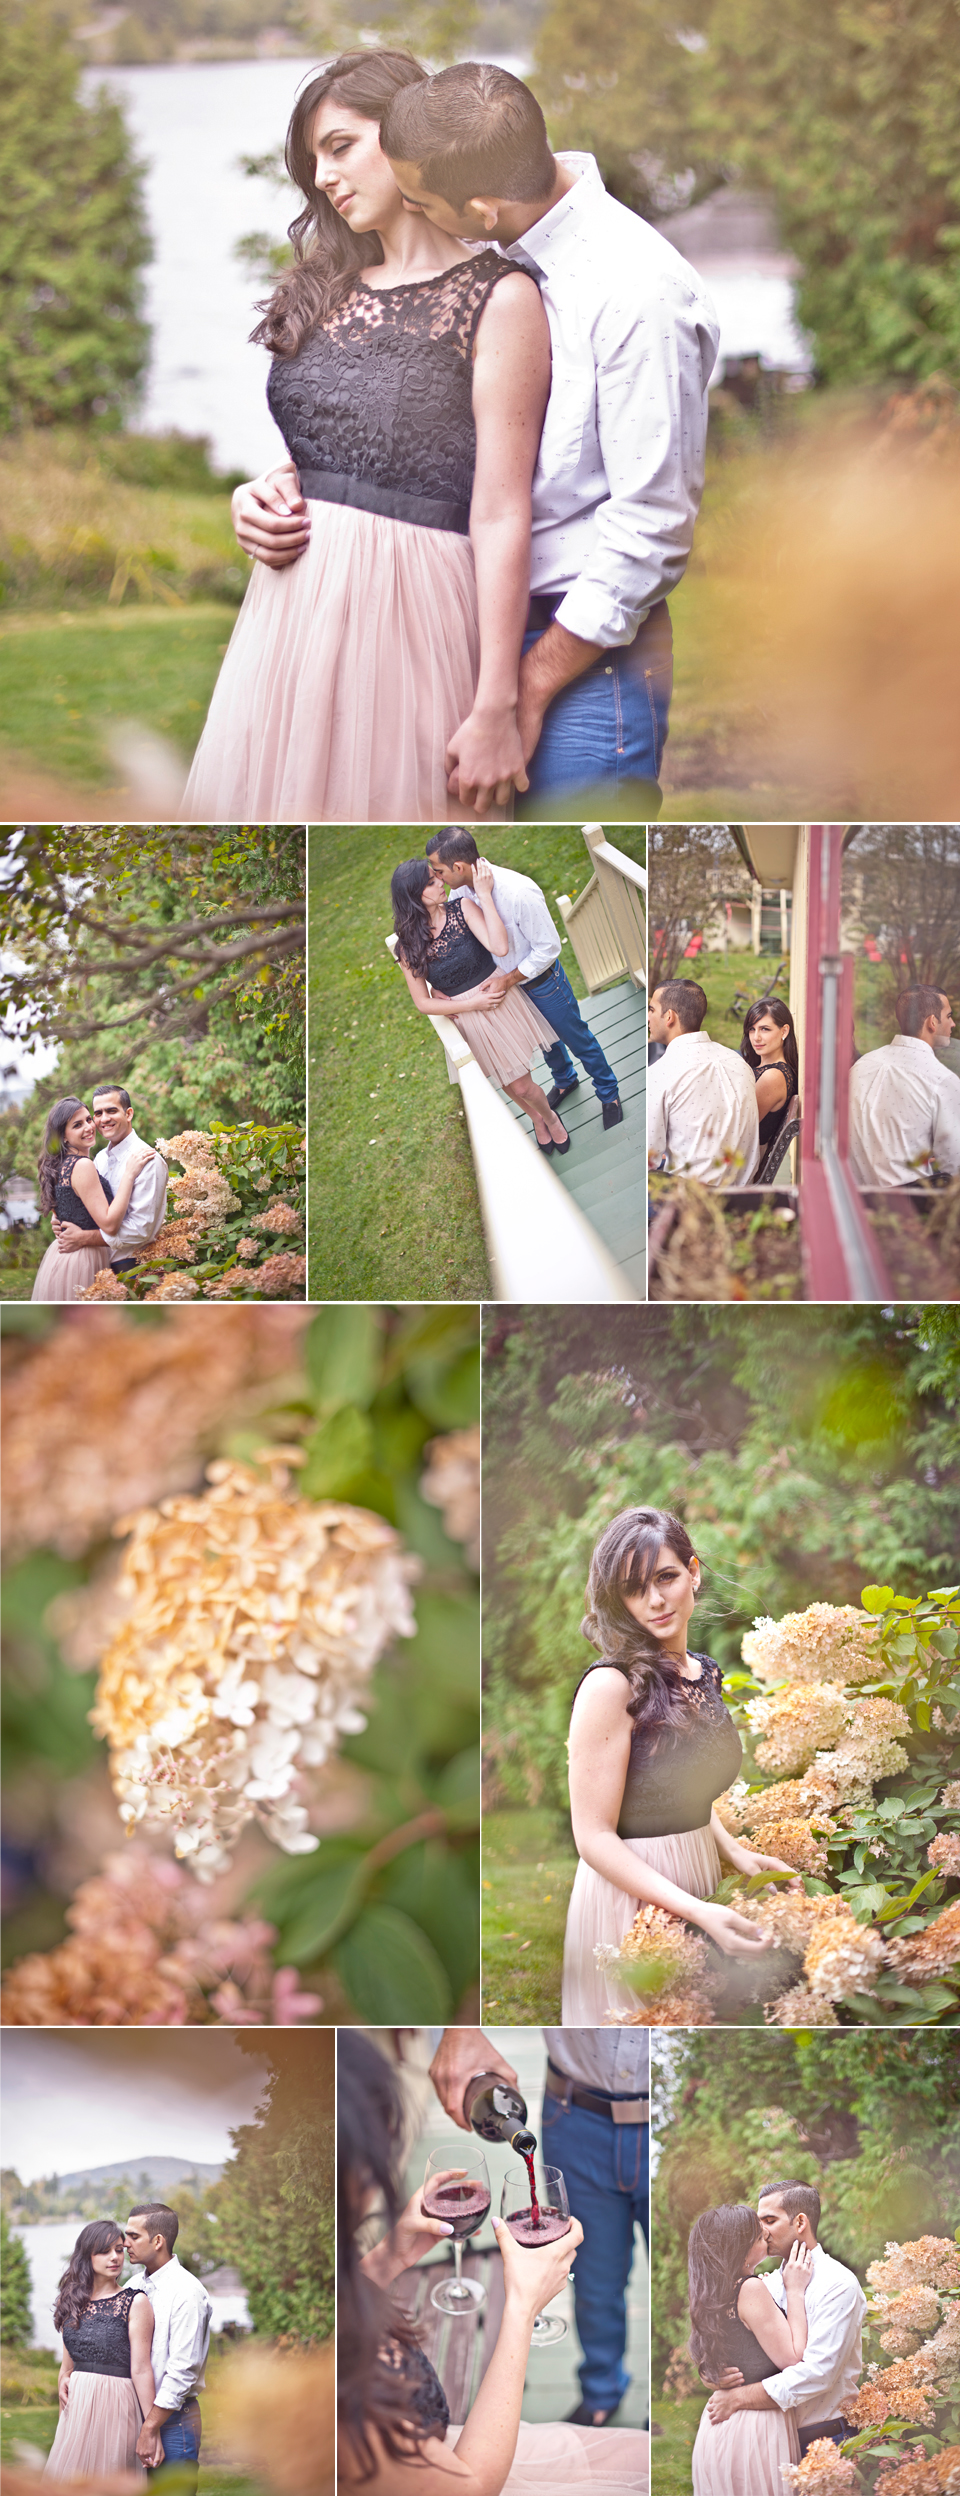 Montreal Wedding Photographer   Engagement Photo   Sainte-Agathe-des-Monts Quebec   Outdoor   LMP wedding photography and videography